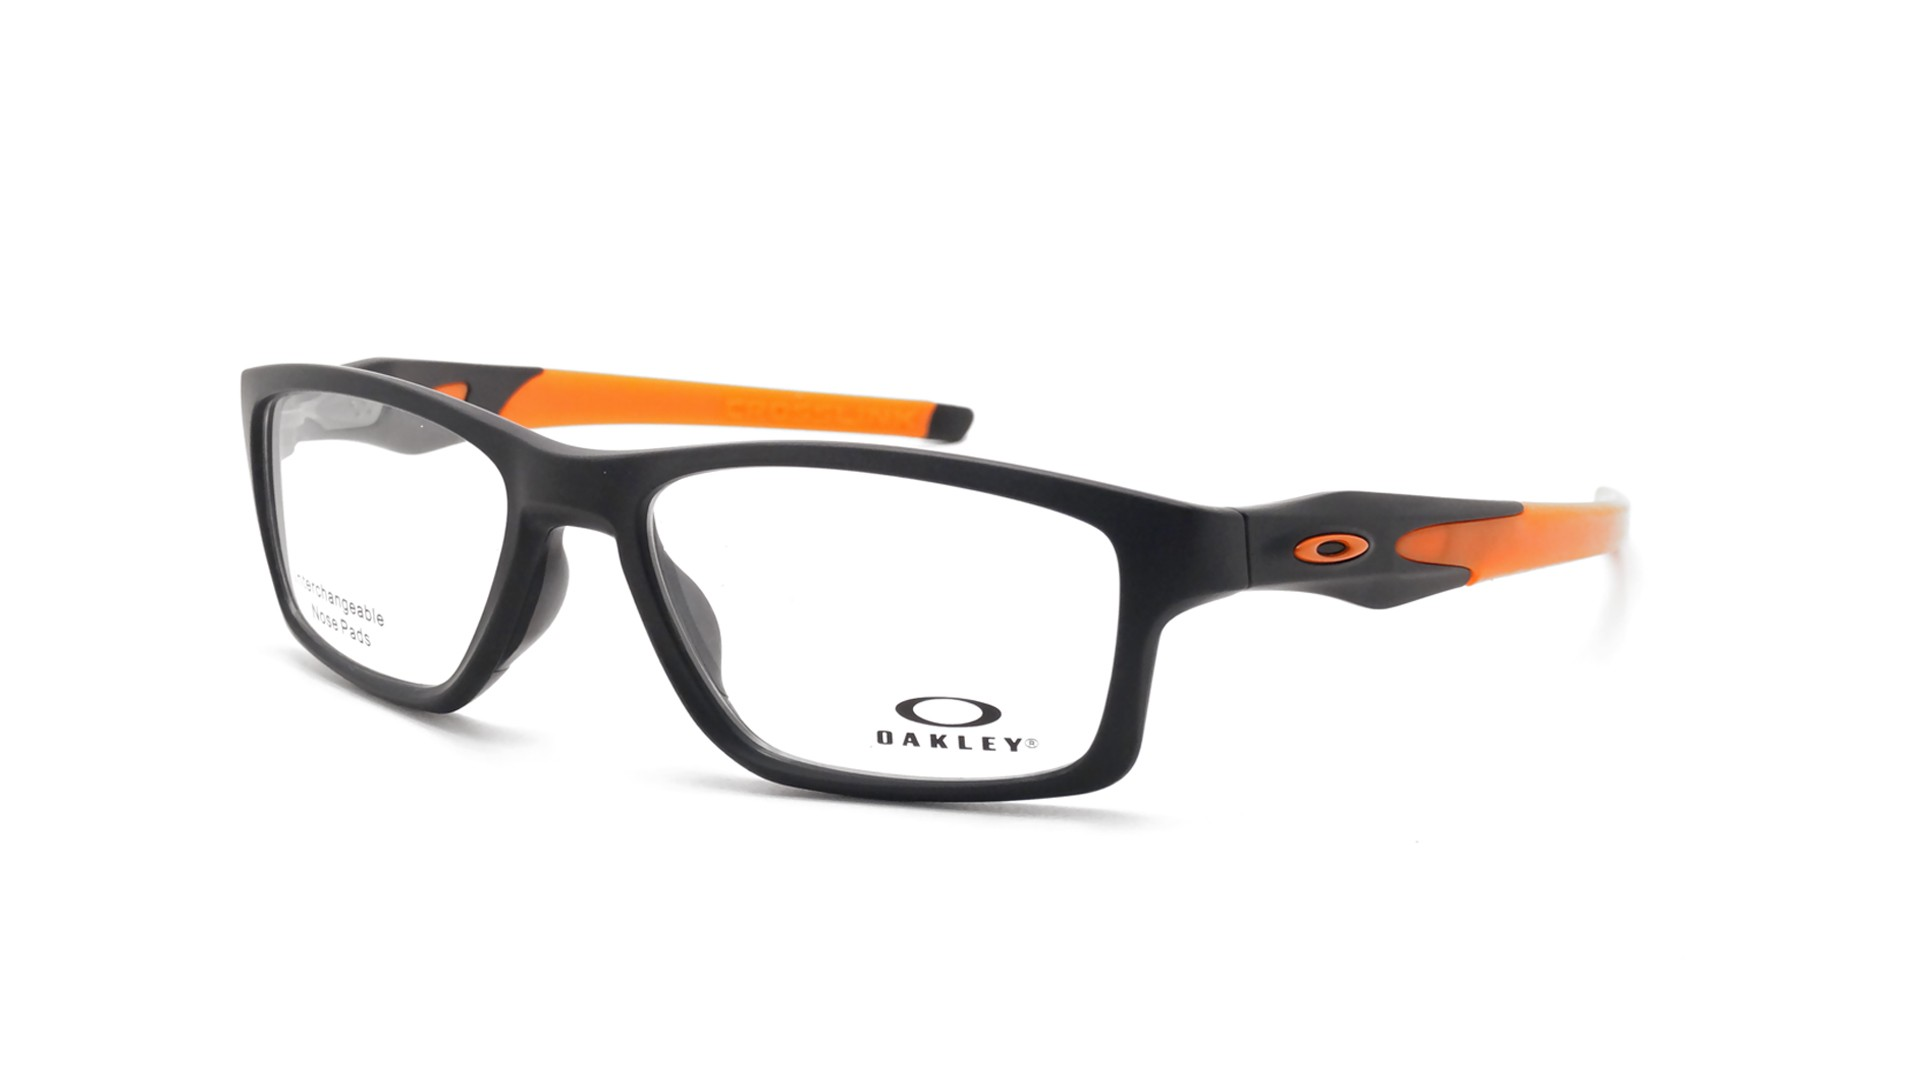 4c94cd93527 Eyeglasses Oakley Crosslink mnp Satin black Tru bridge Black Matte OX8090 01  55-17 Medium